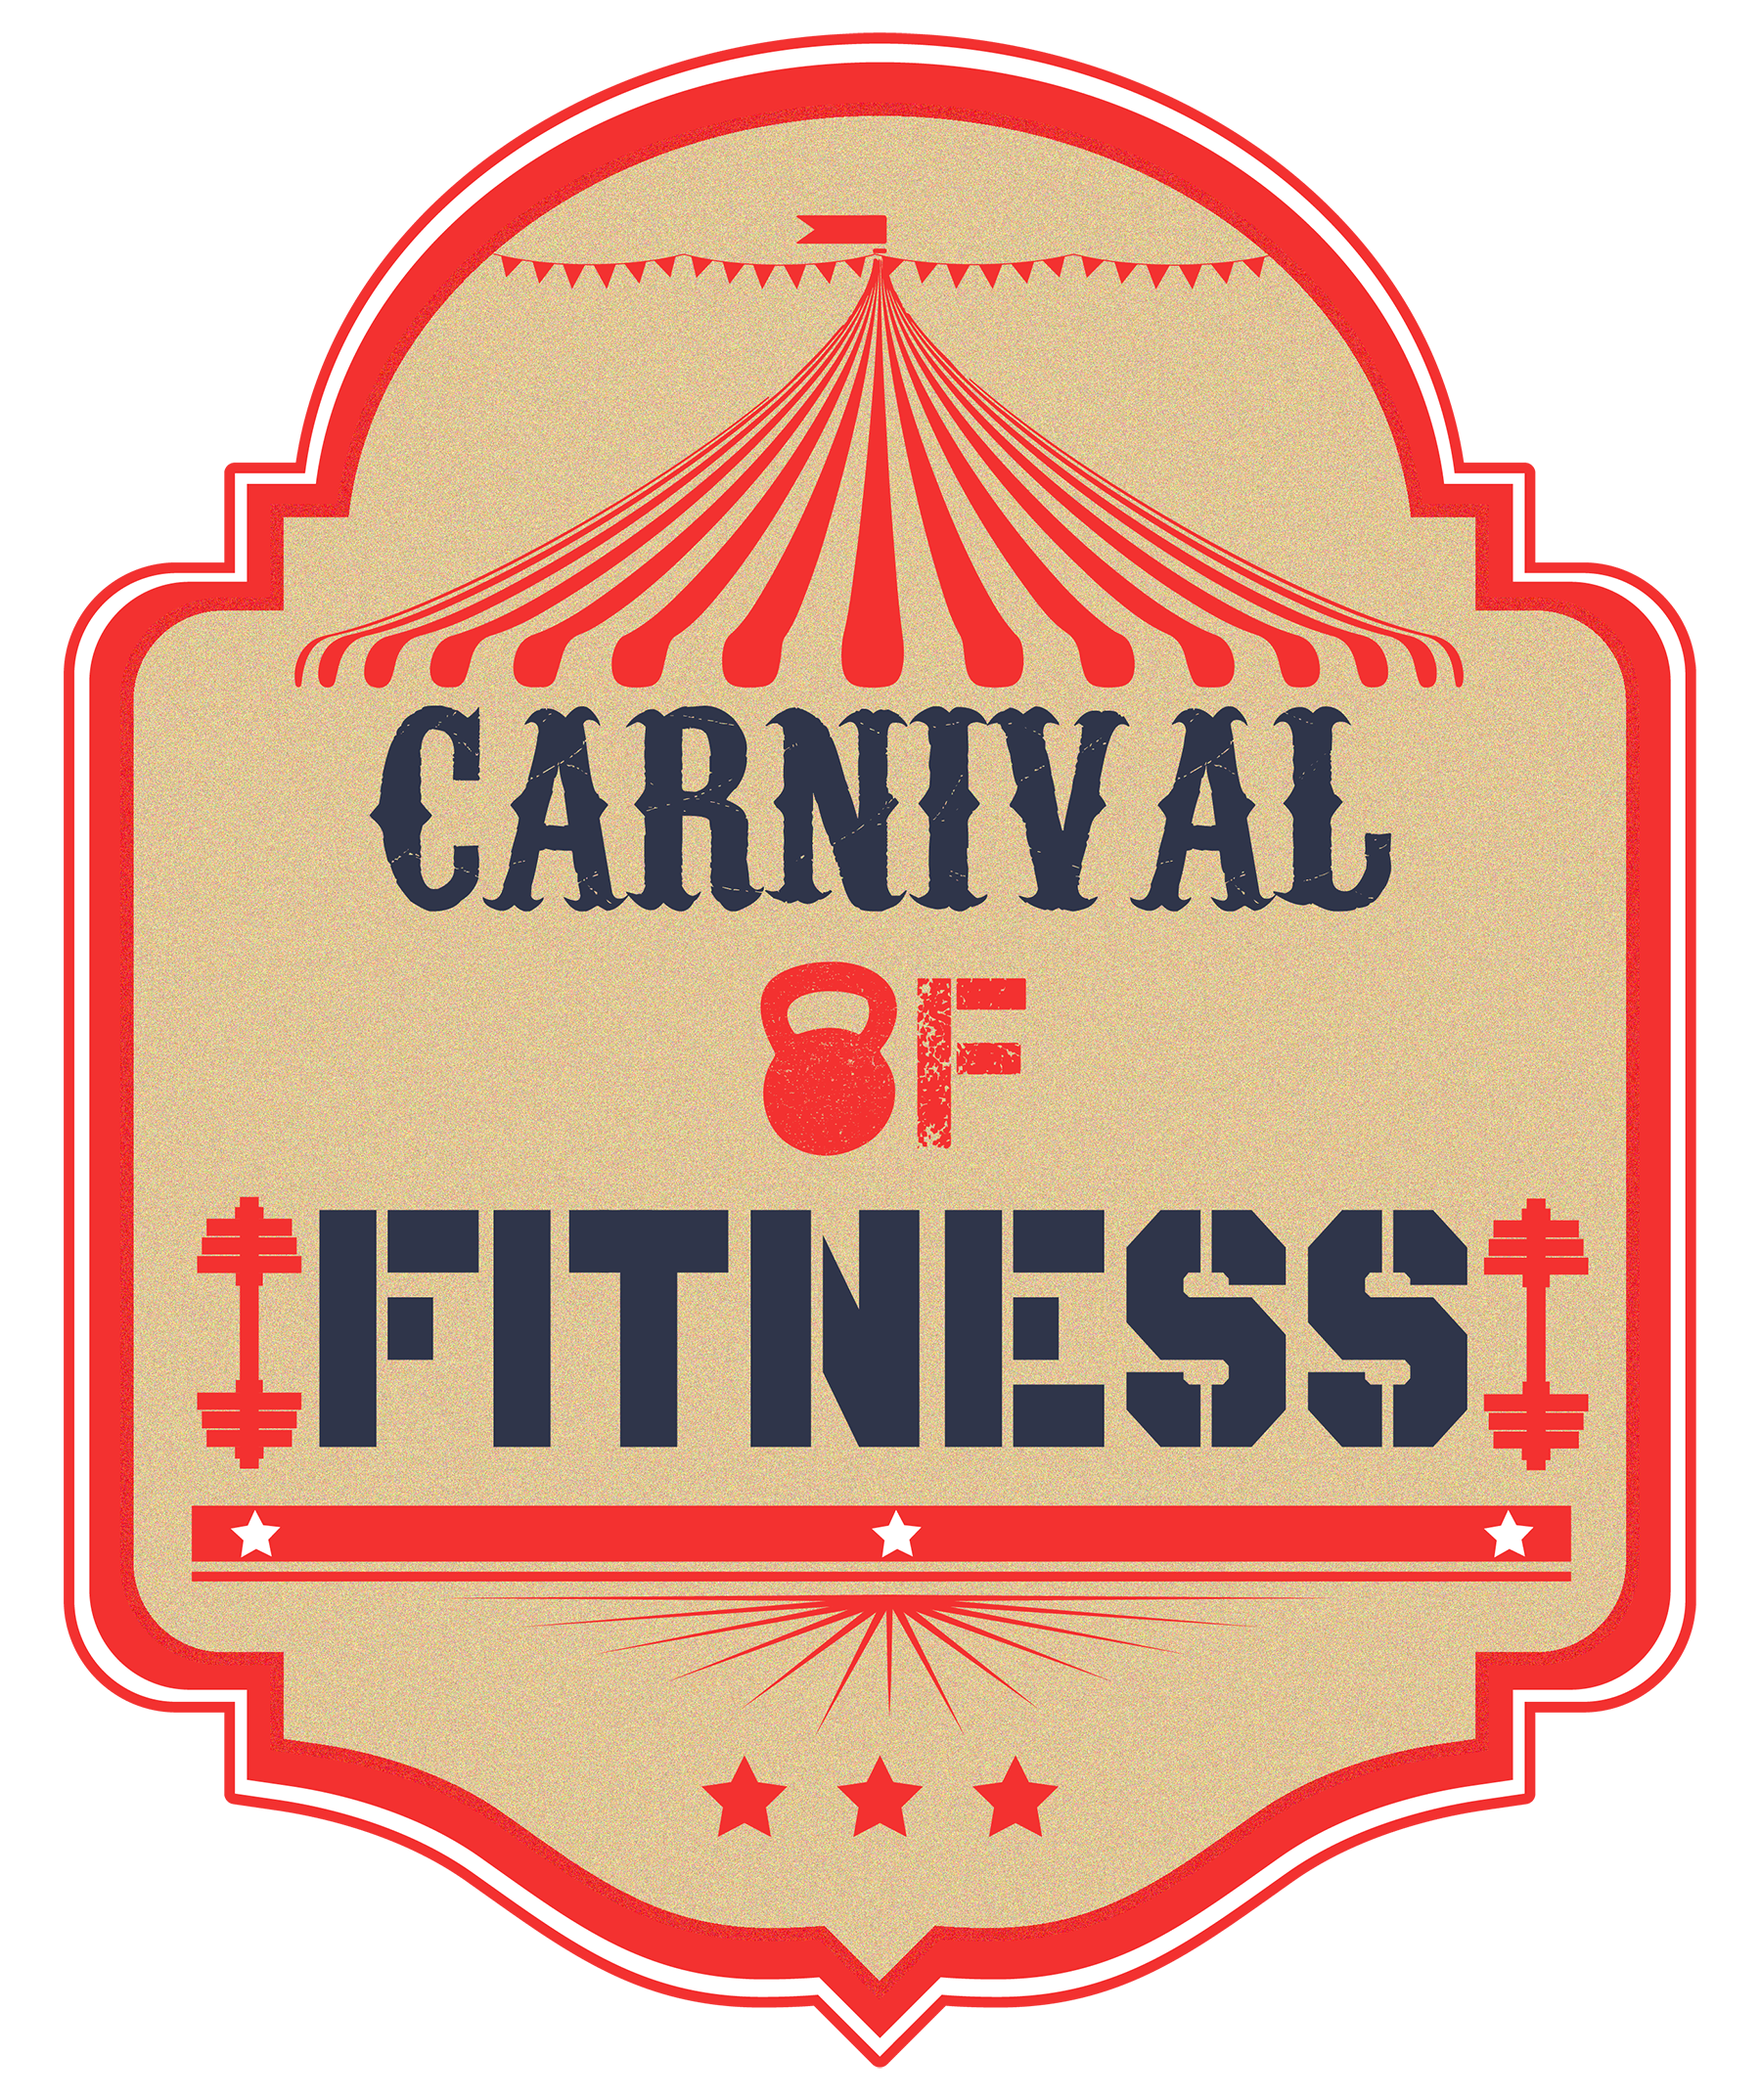 The of fitness . Volunteering clipart carnival